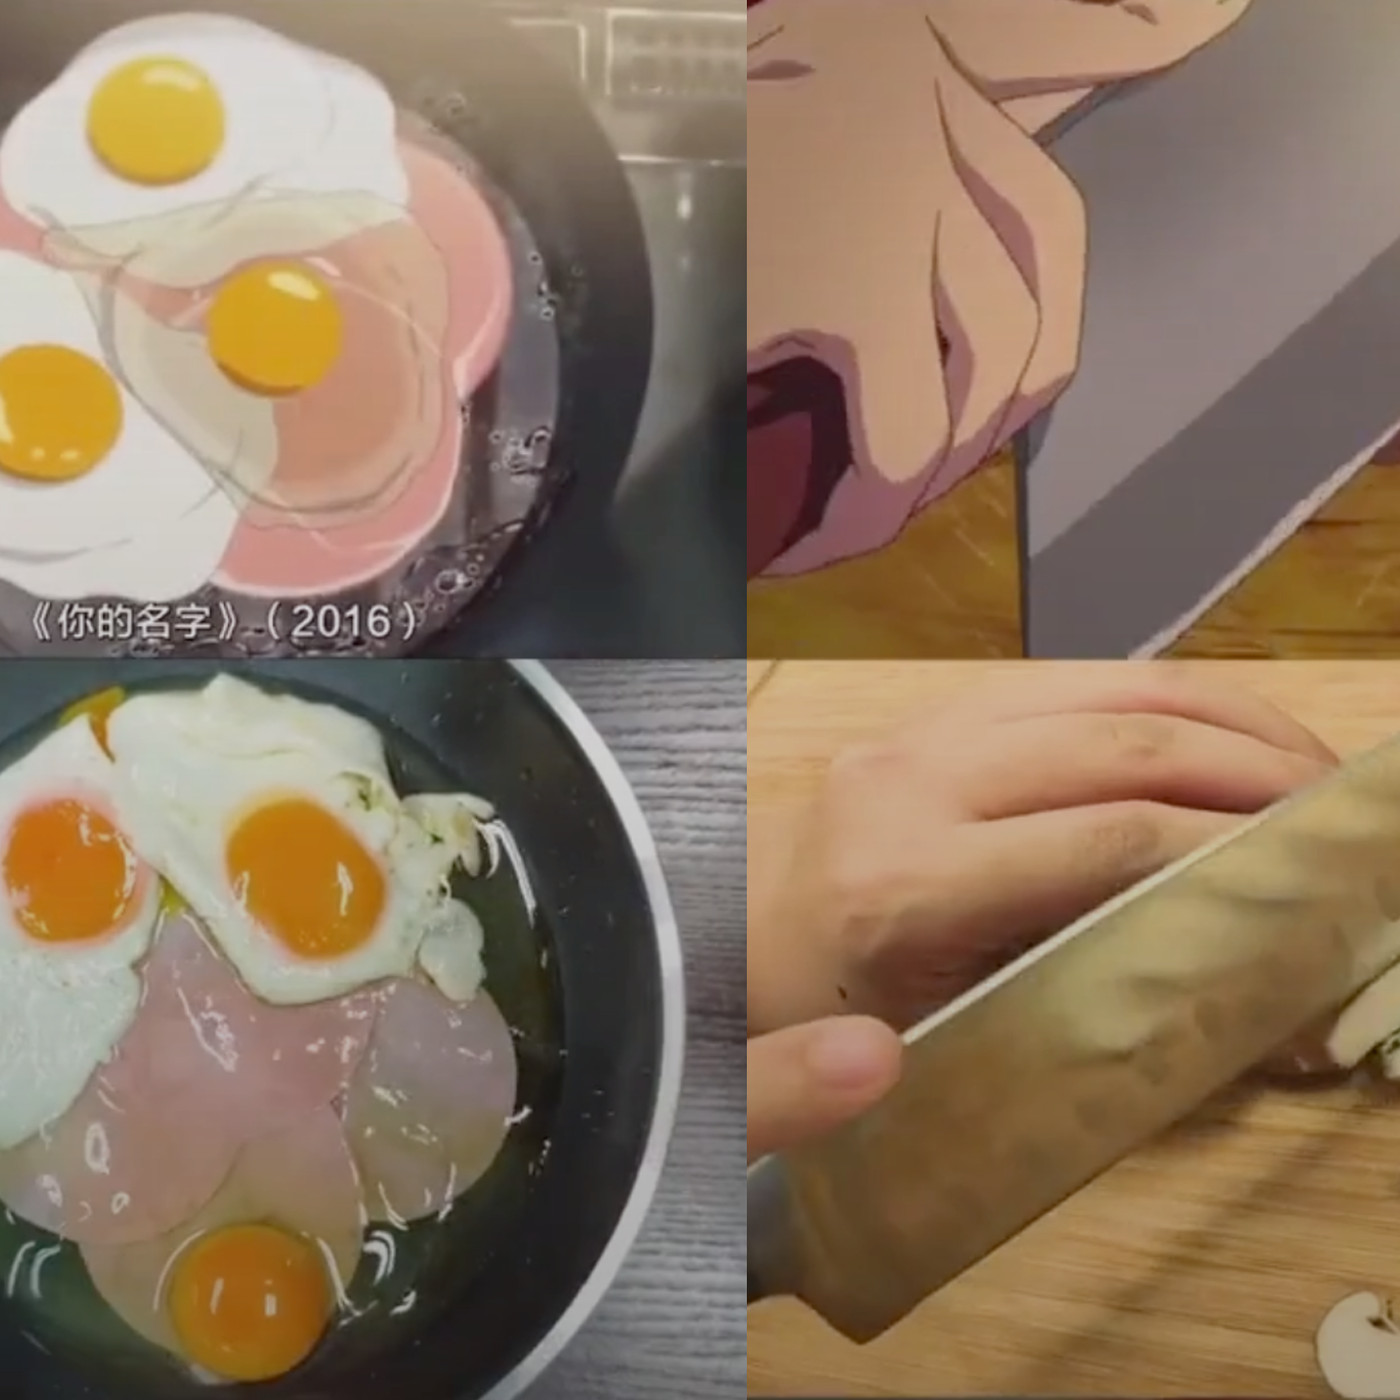 Tiktok User Michael Chow Creates Anime Cooking Scenes With Real Food Eater